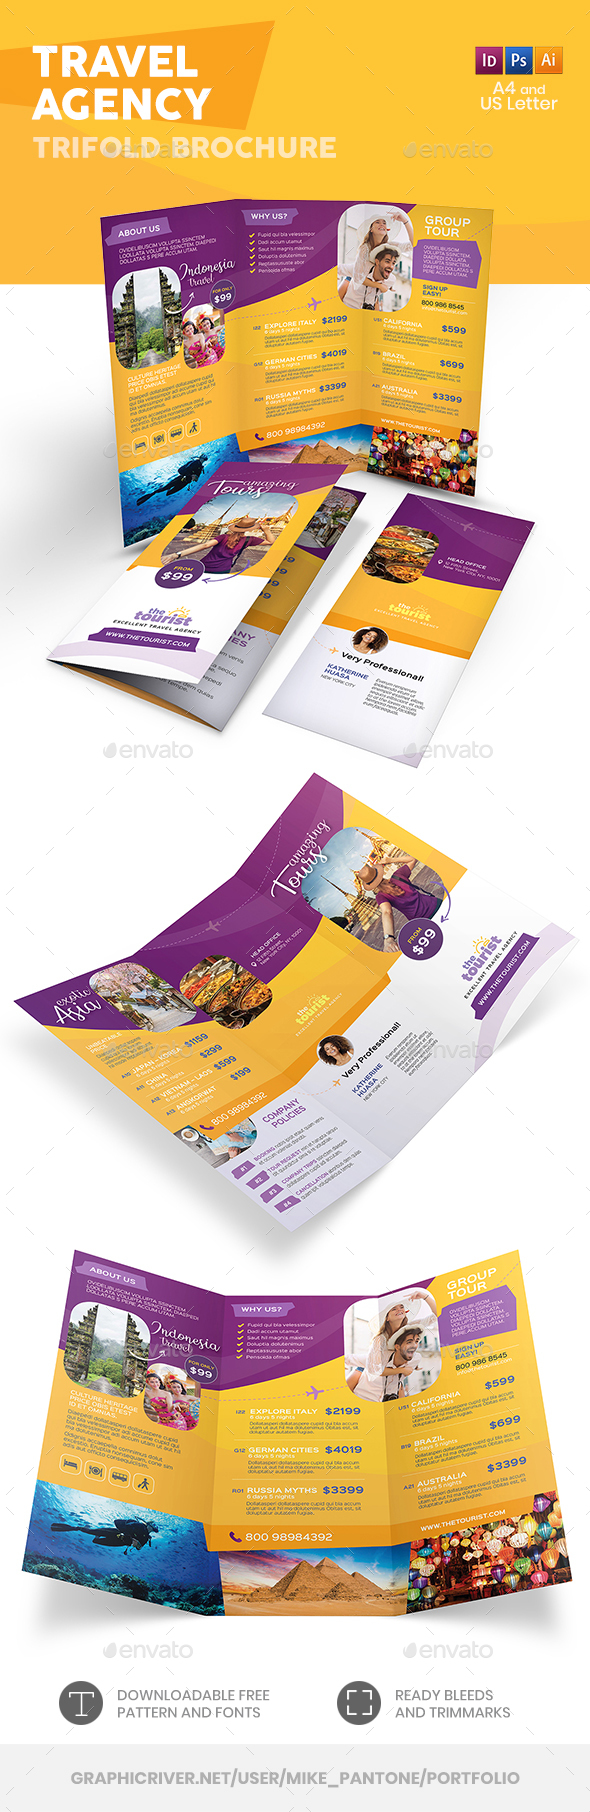 Travel Agency Trifold Brochure 4 by Mike_pantone | GraphicRiver